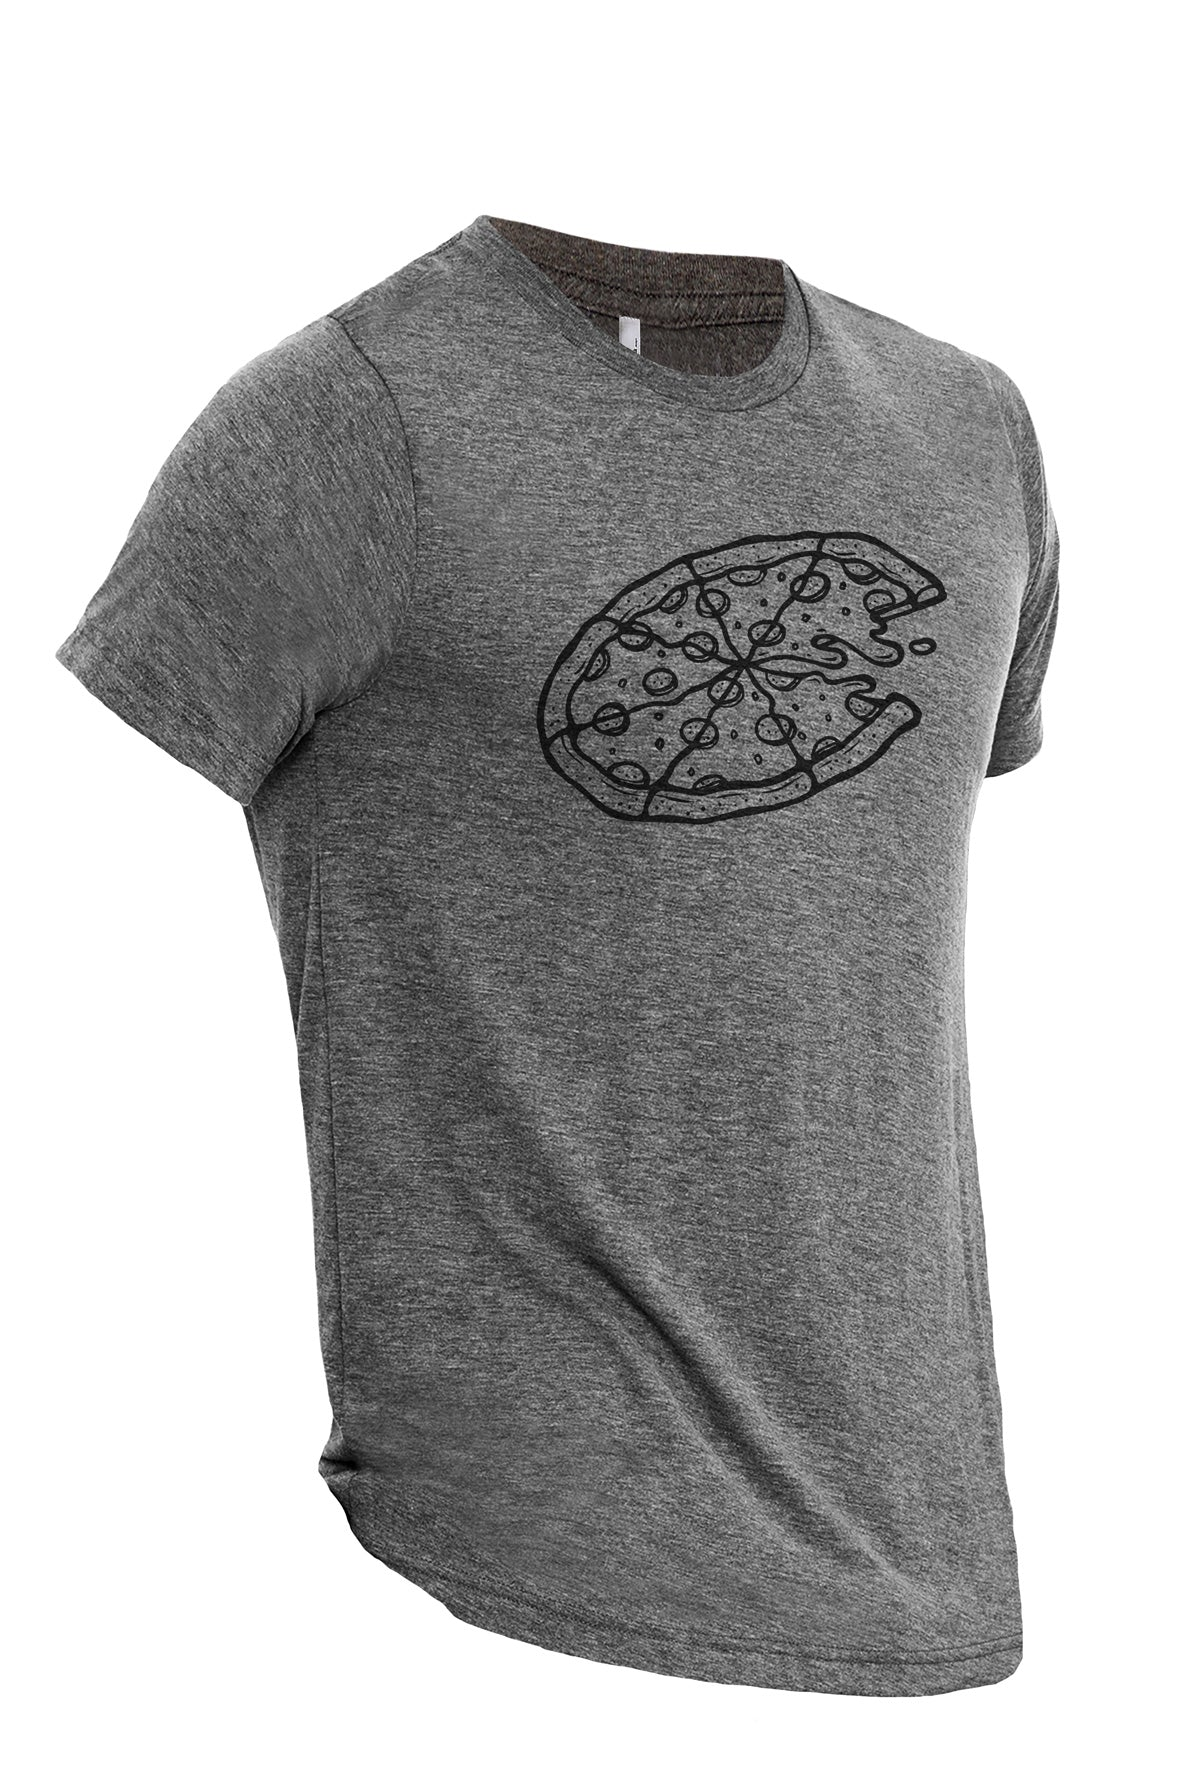 Whole Pizza Heather Grey Printed Graphic Men's Crew T-Shirt Tee